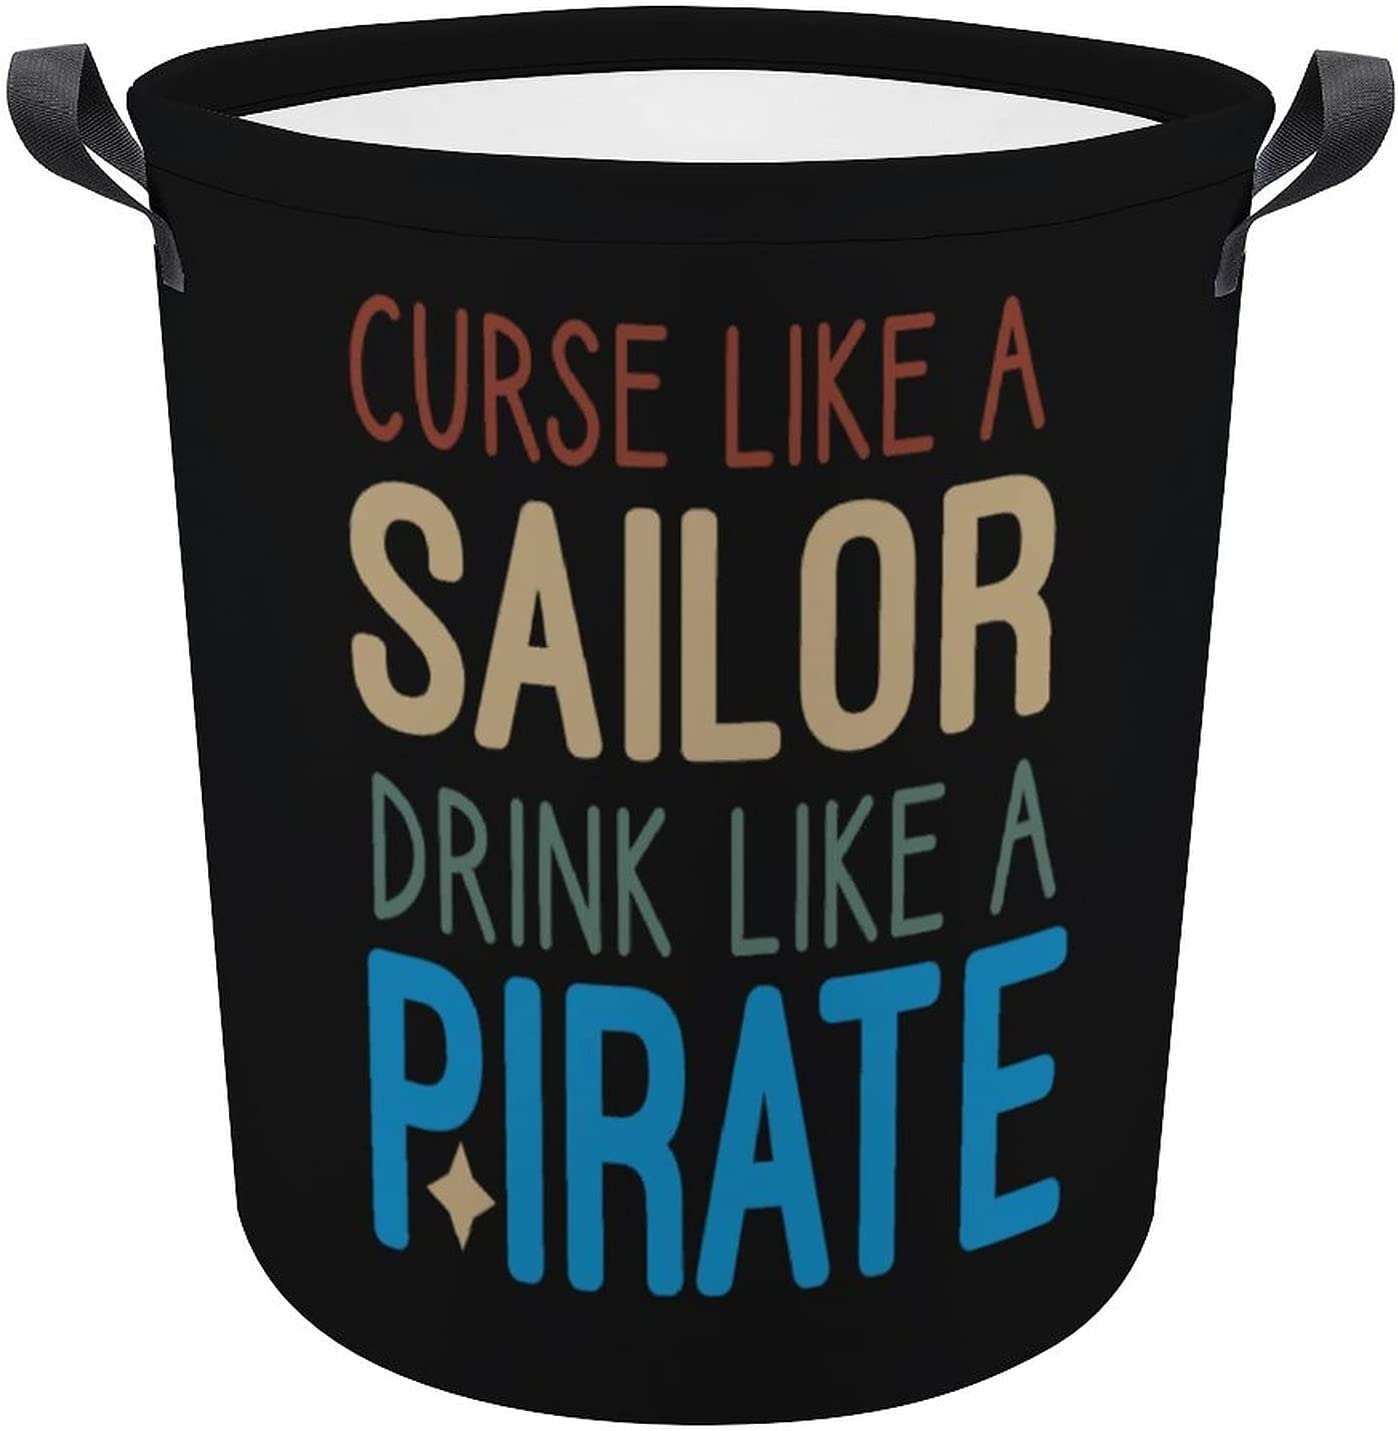 Curse High quality Like A online shopping Sailor Drink Pirate Quote Funny Gift Oxford Laundry